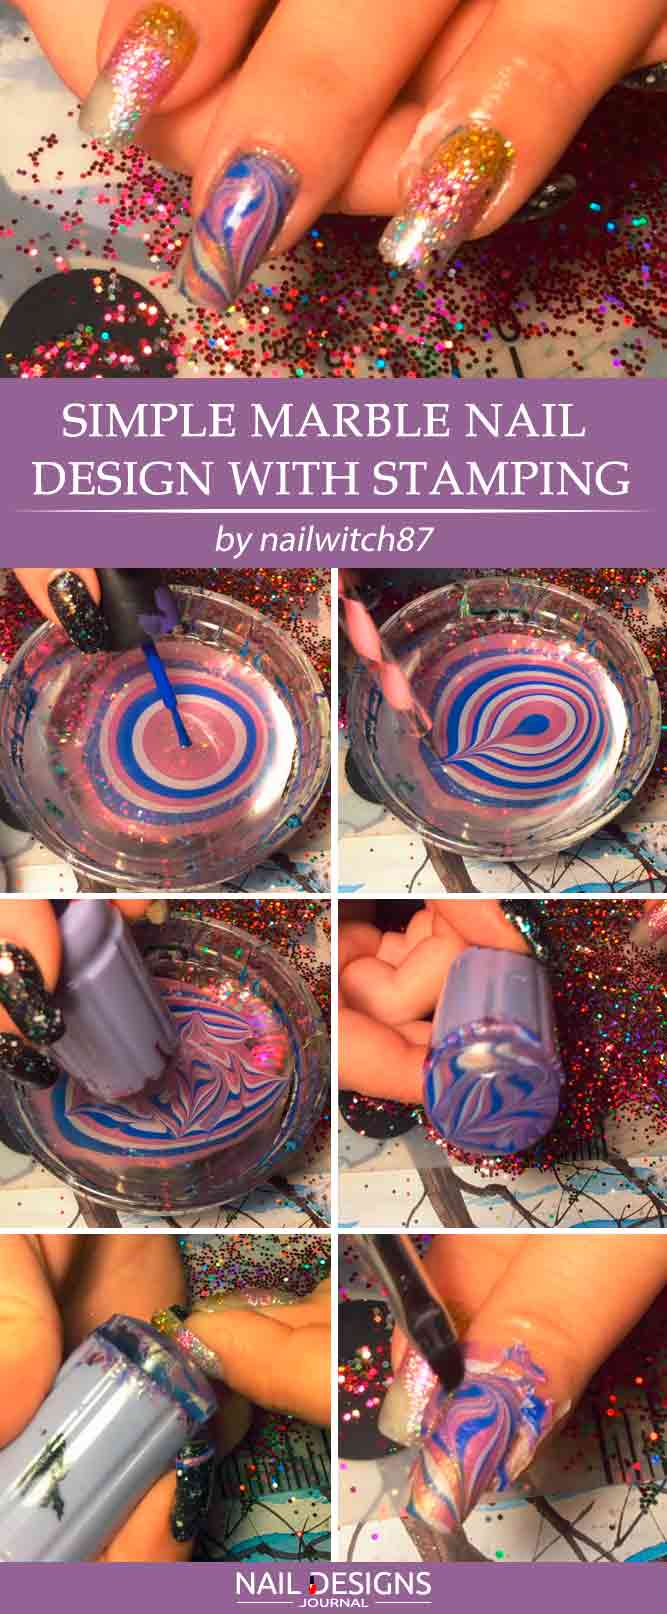 Simple Marble Nail Design With Stamping